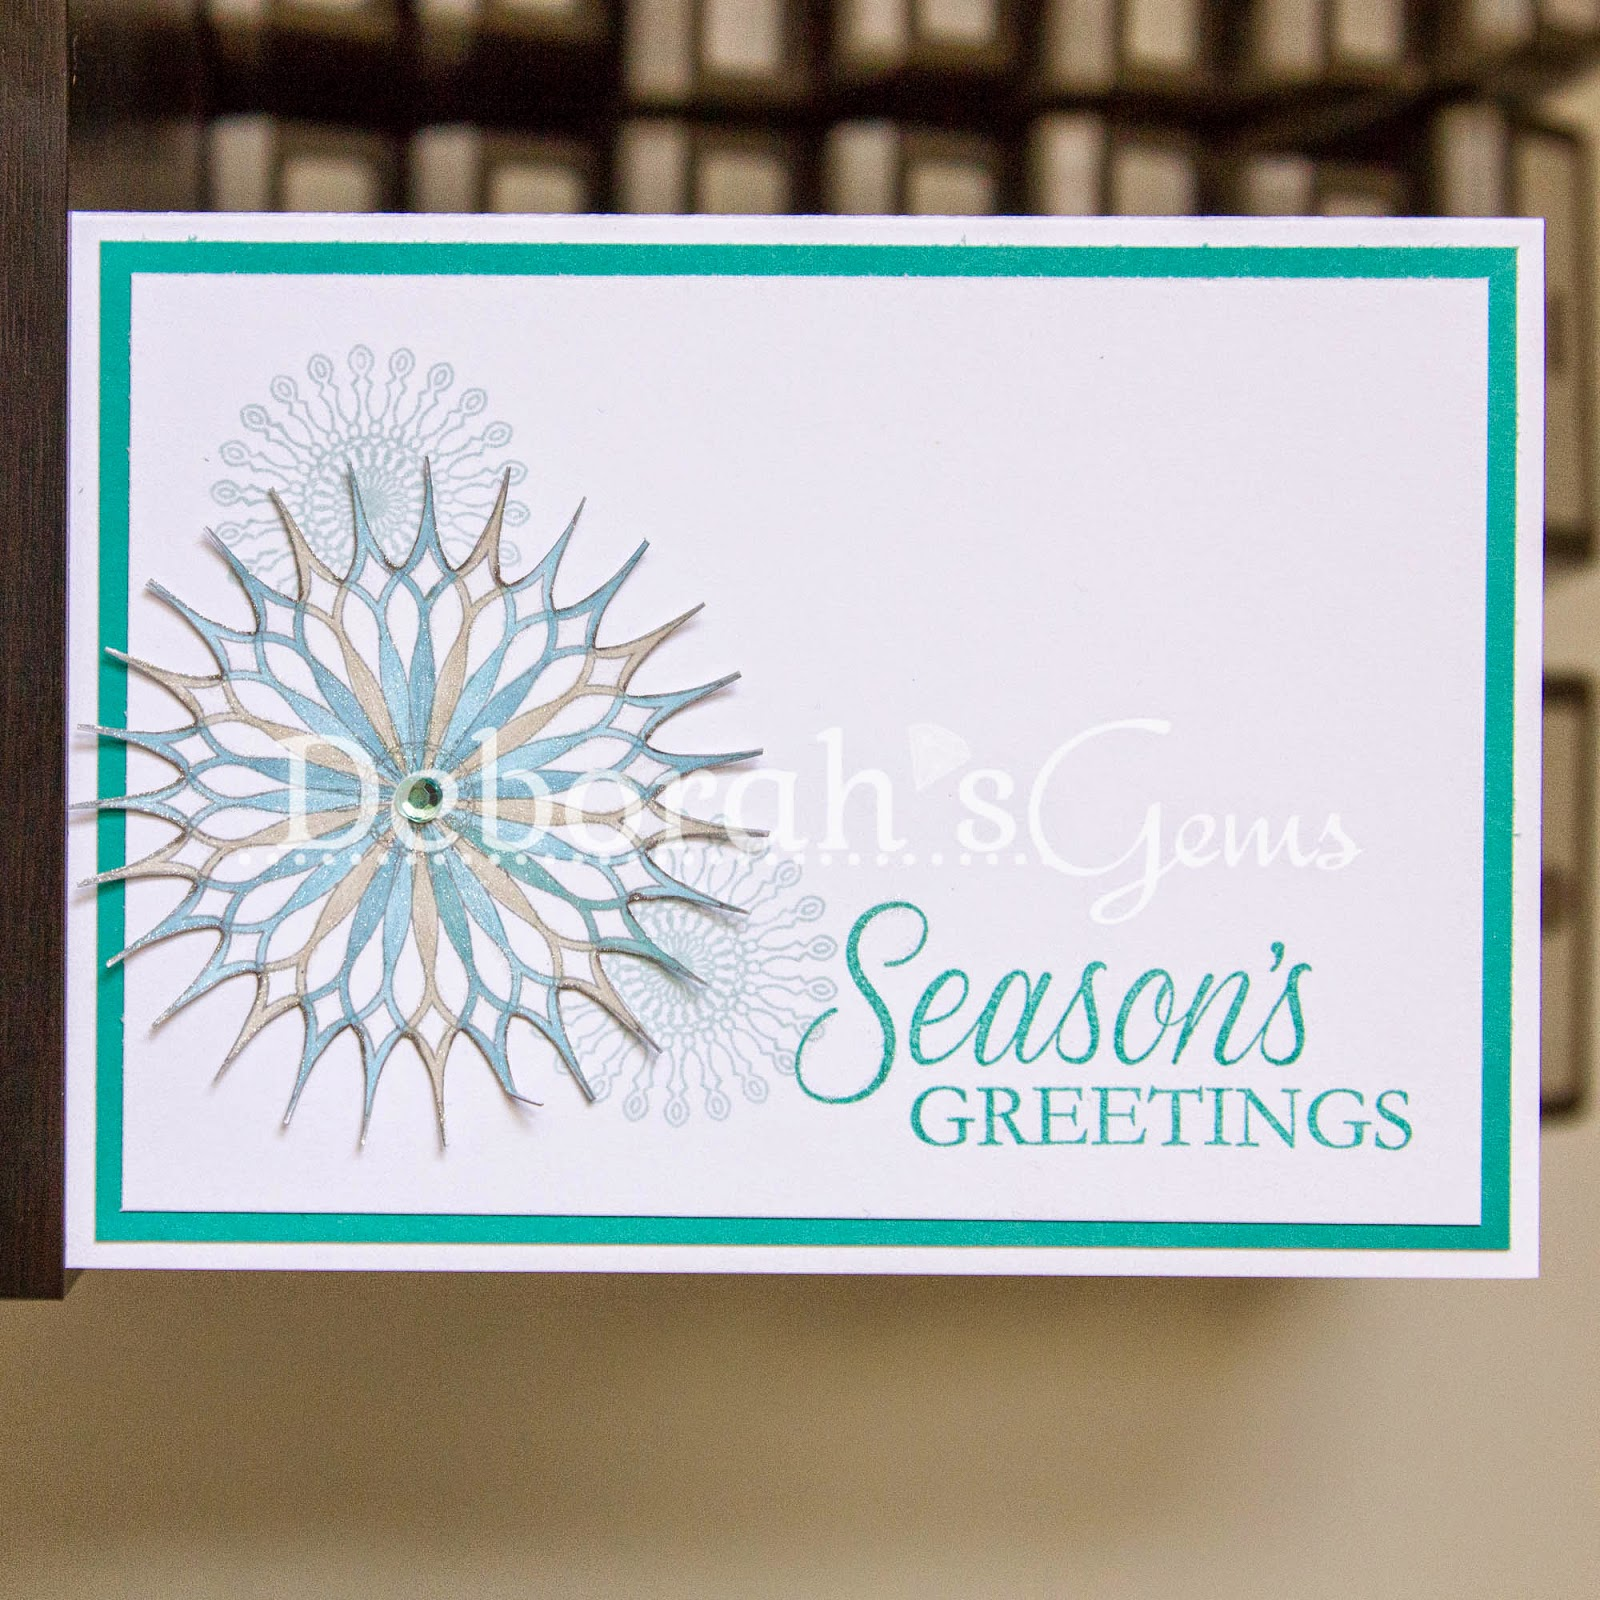 Season's Greetings sq - photo by Deborah Frings - Deborah's Gems